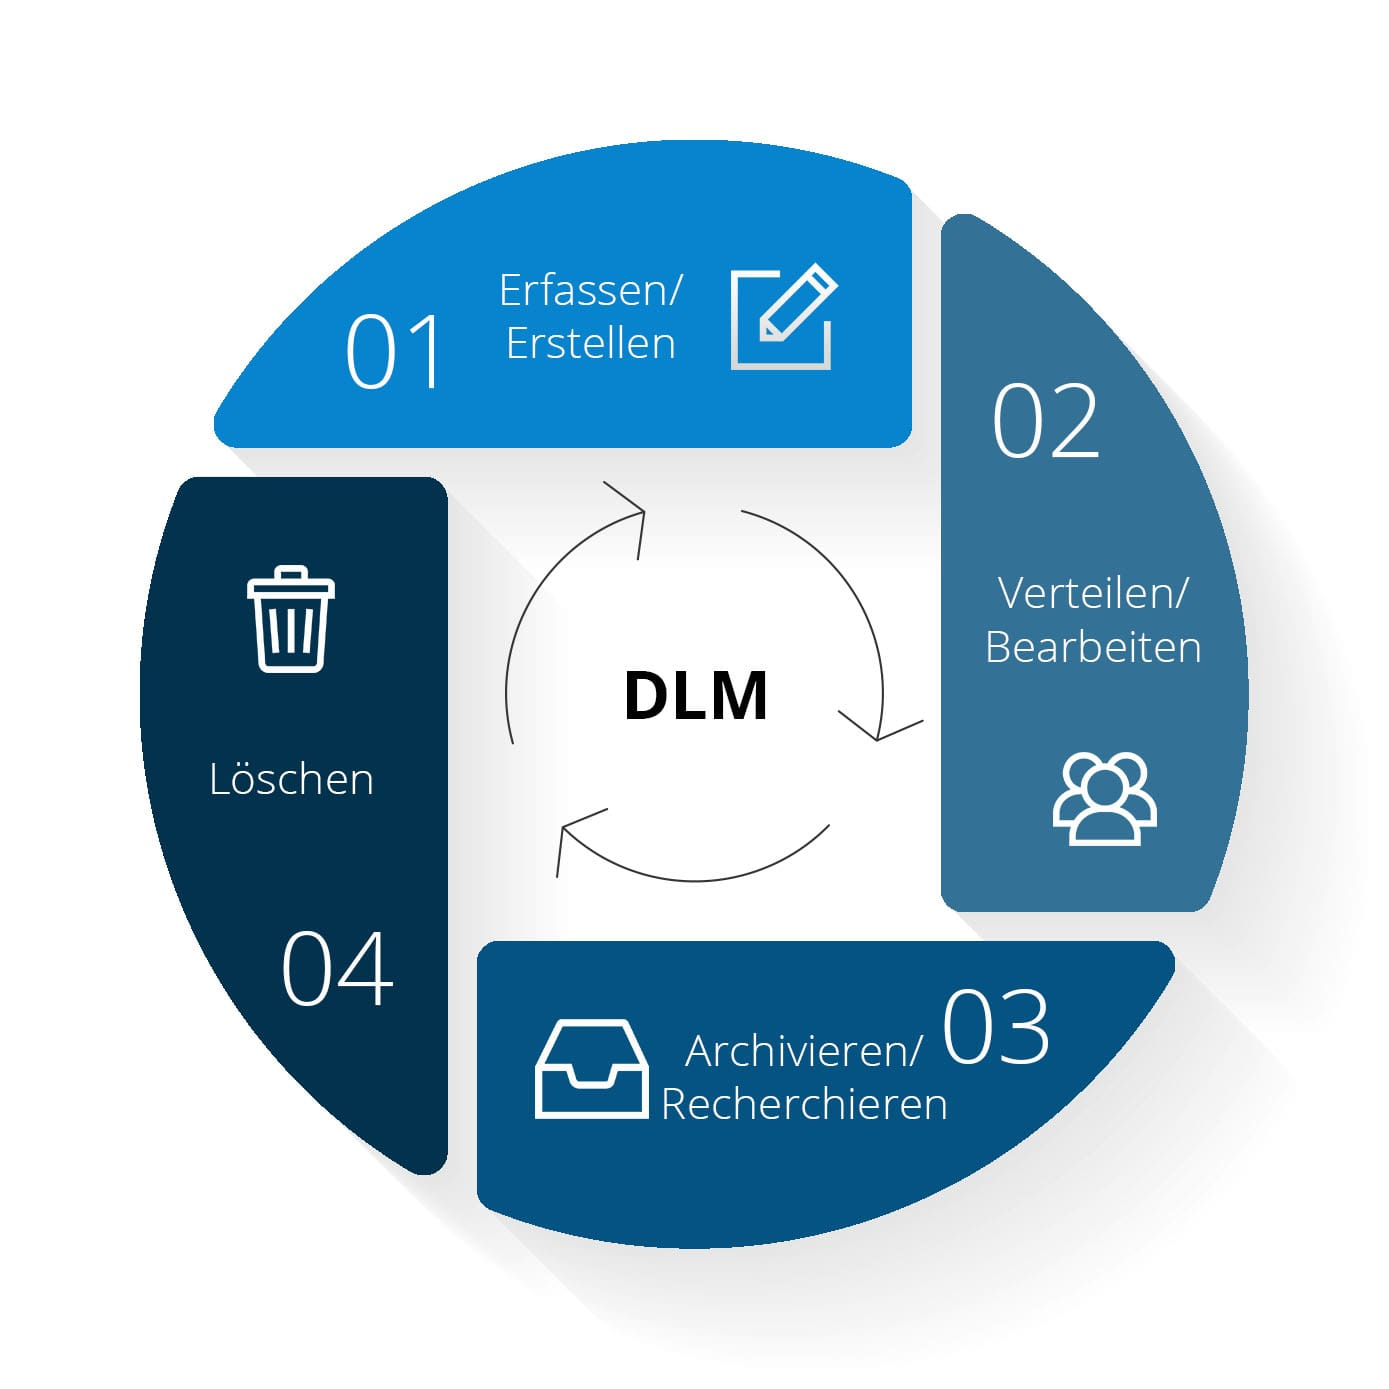 Diagramm zum Document Lifecycle Management